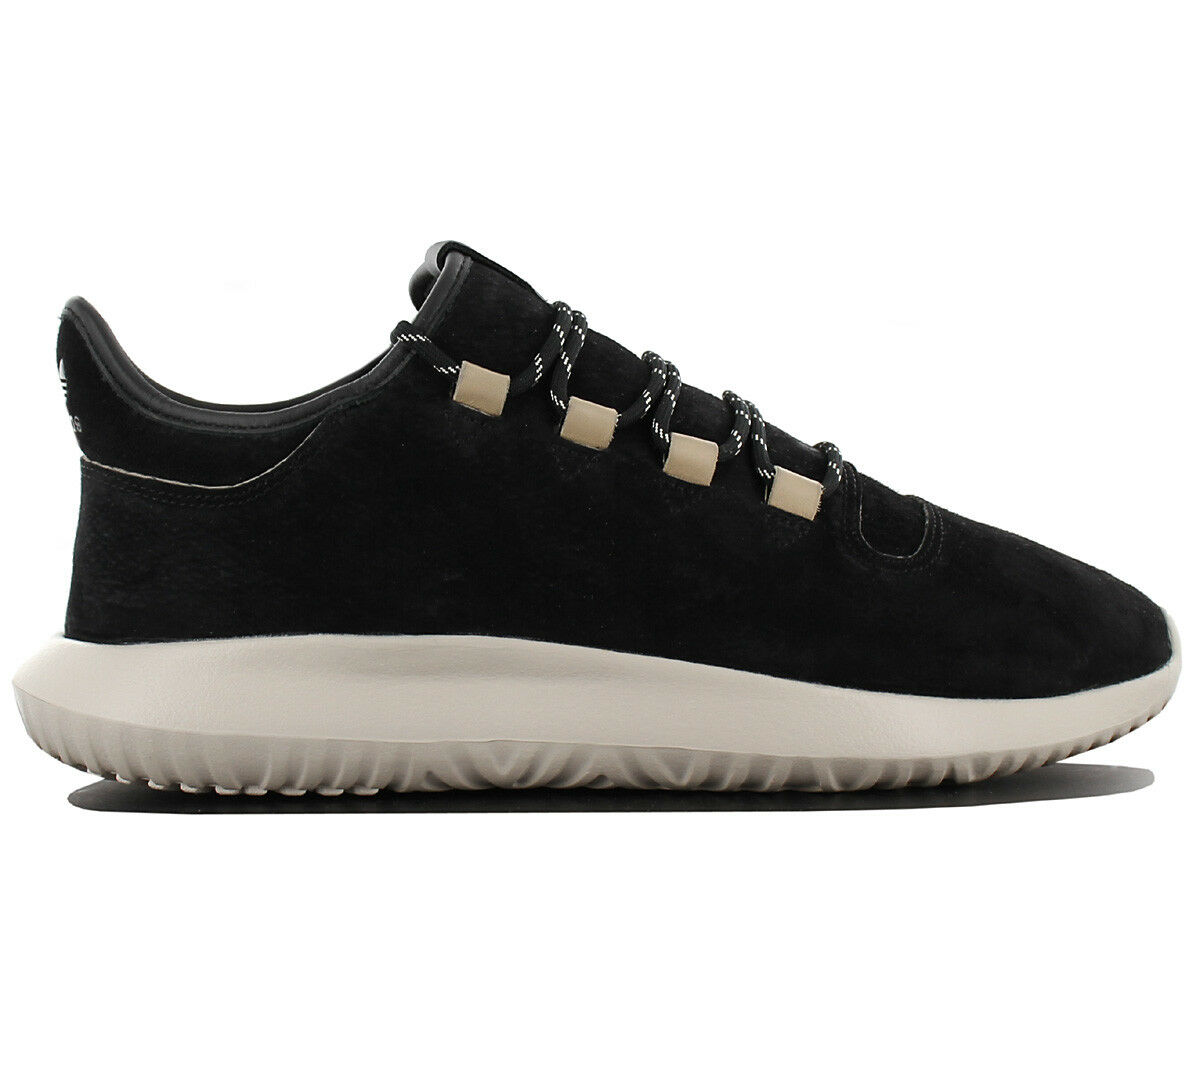 Adidas Originals Tubular Shadow Leather Chaussures baskets by3568 Baskets NEUF